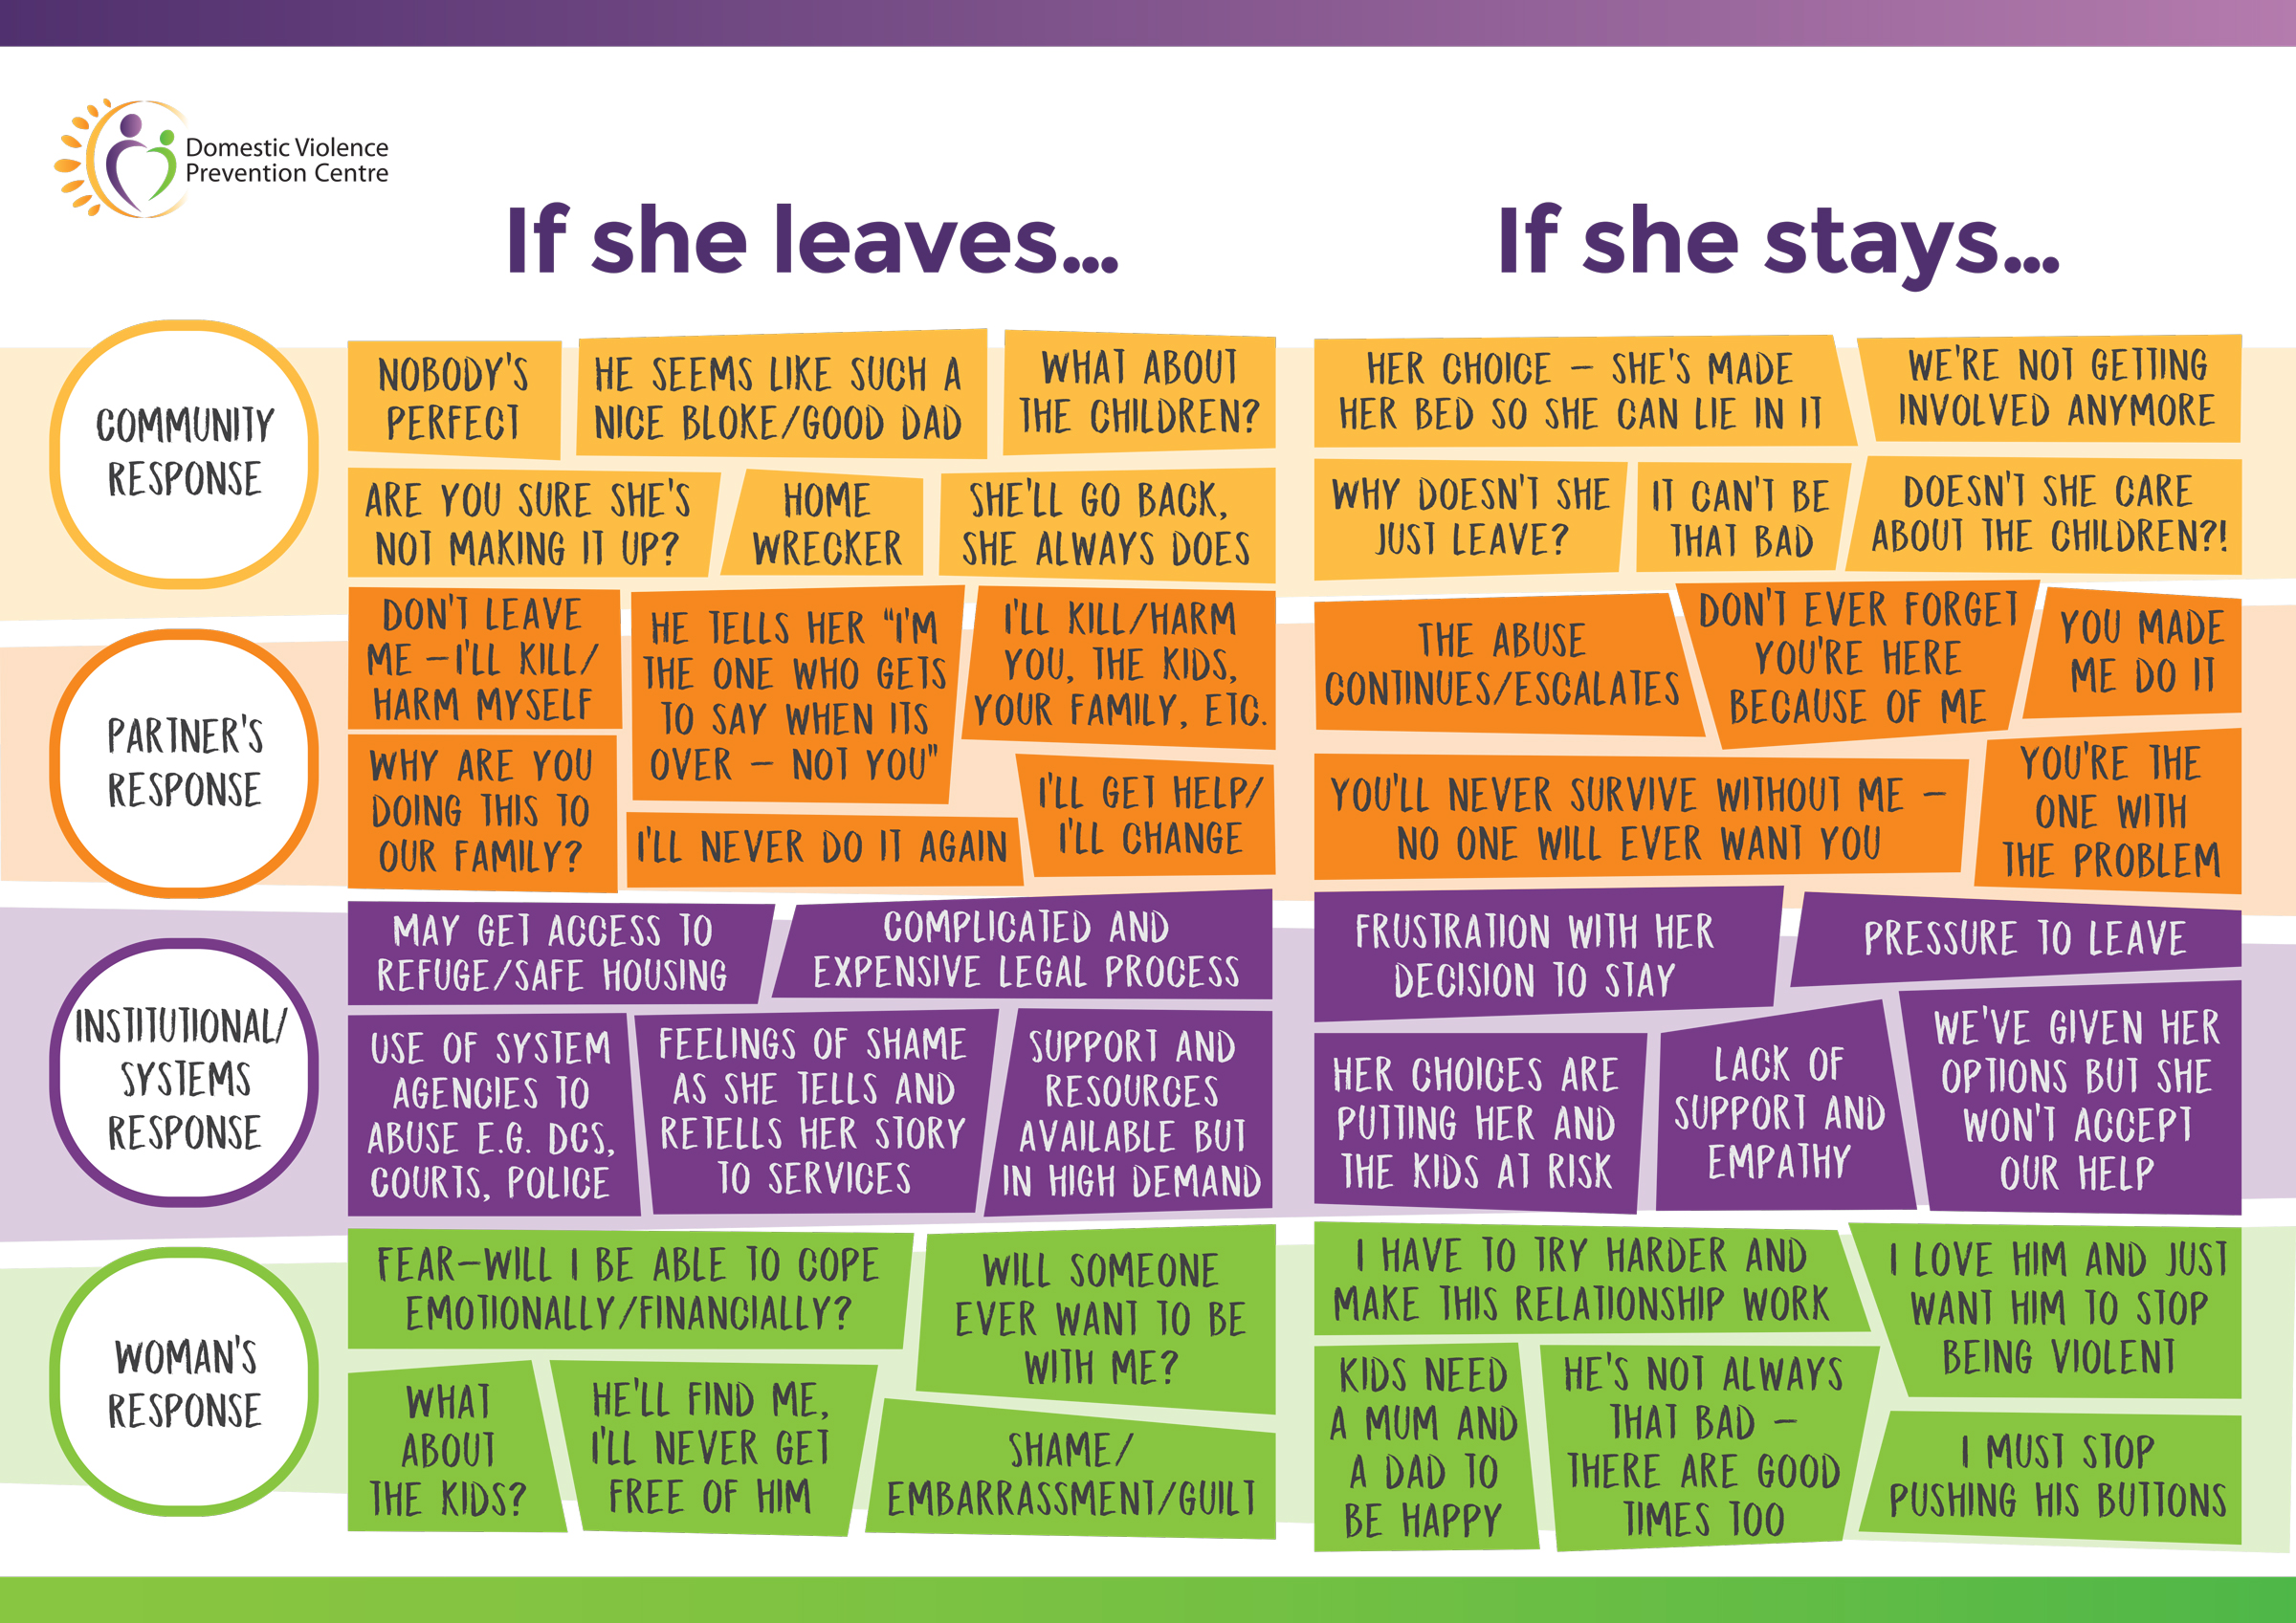 A chart of responses from the community, partner, institutional/systems and the woman, as to whether she leaves or stays in the relationship.